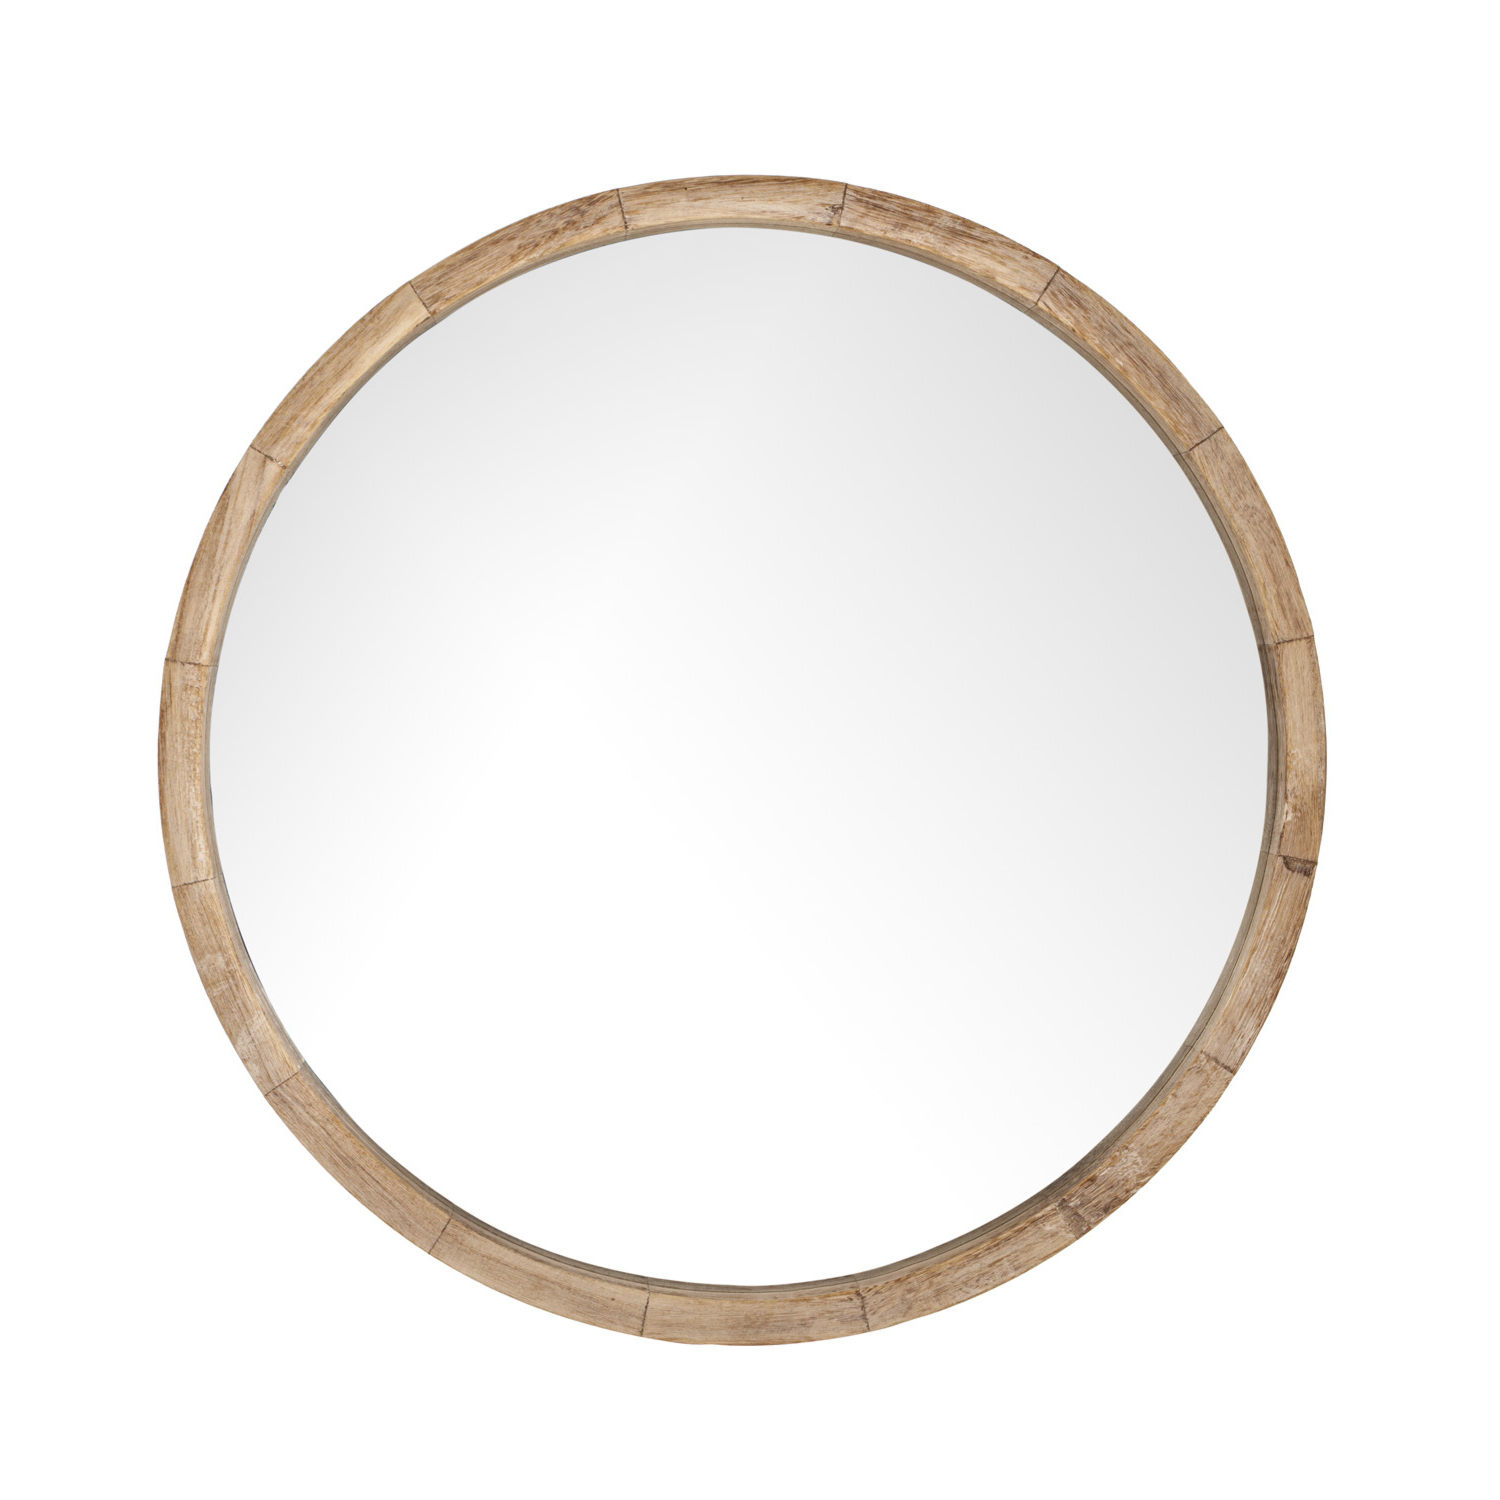 Current Round Wood Wall Mirrors With Regard To Solid Wood Round Mirror (View 5 of 20)